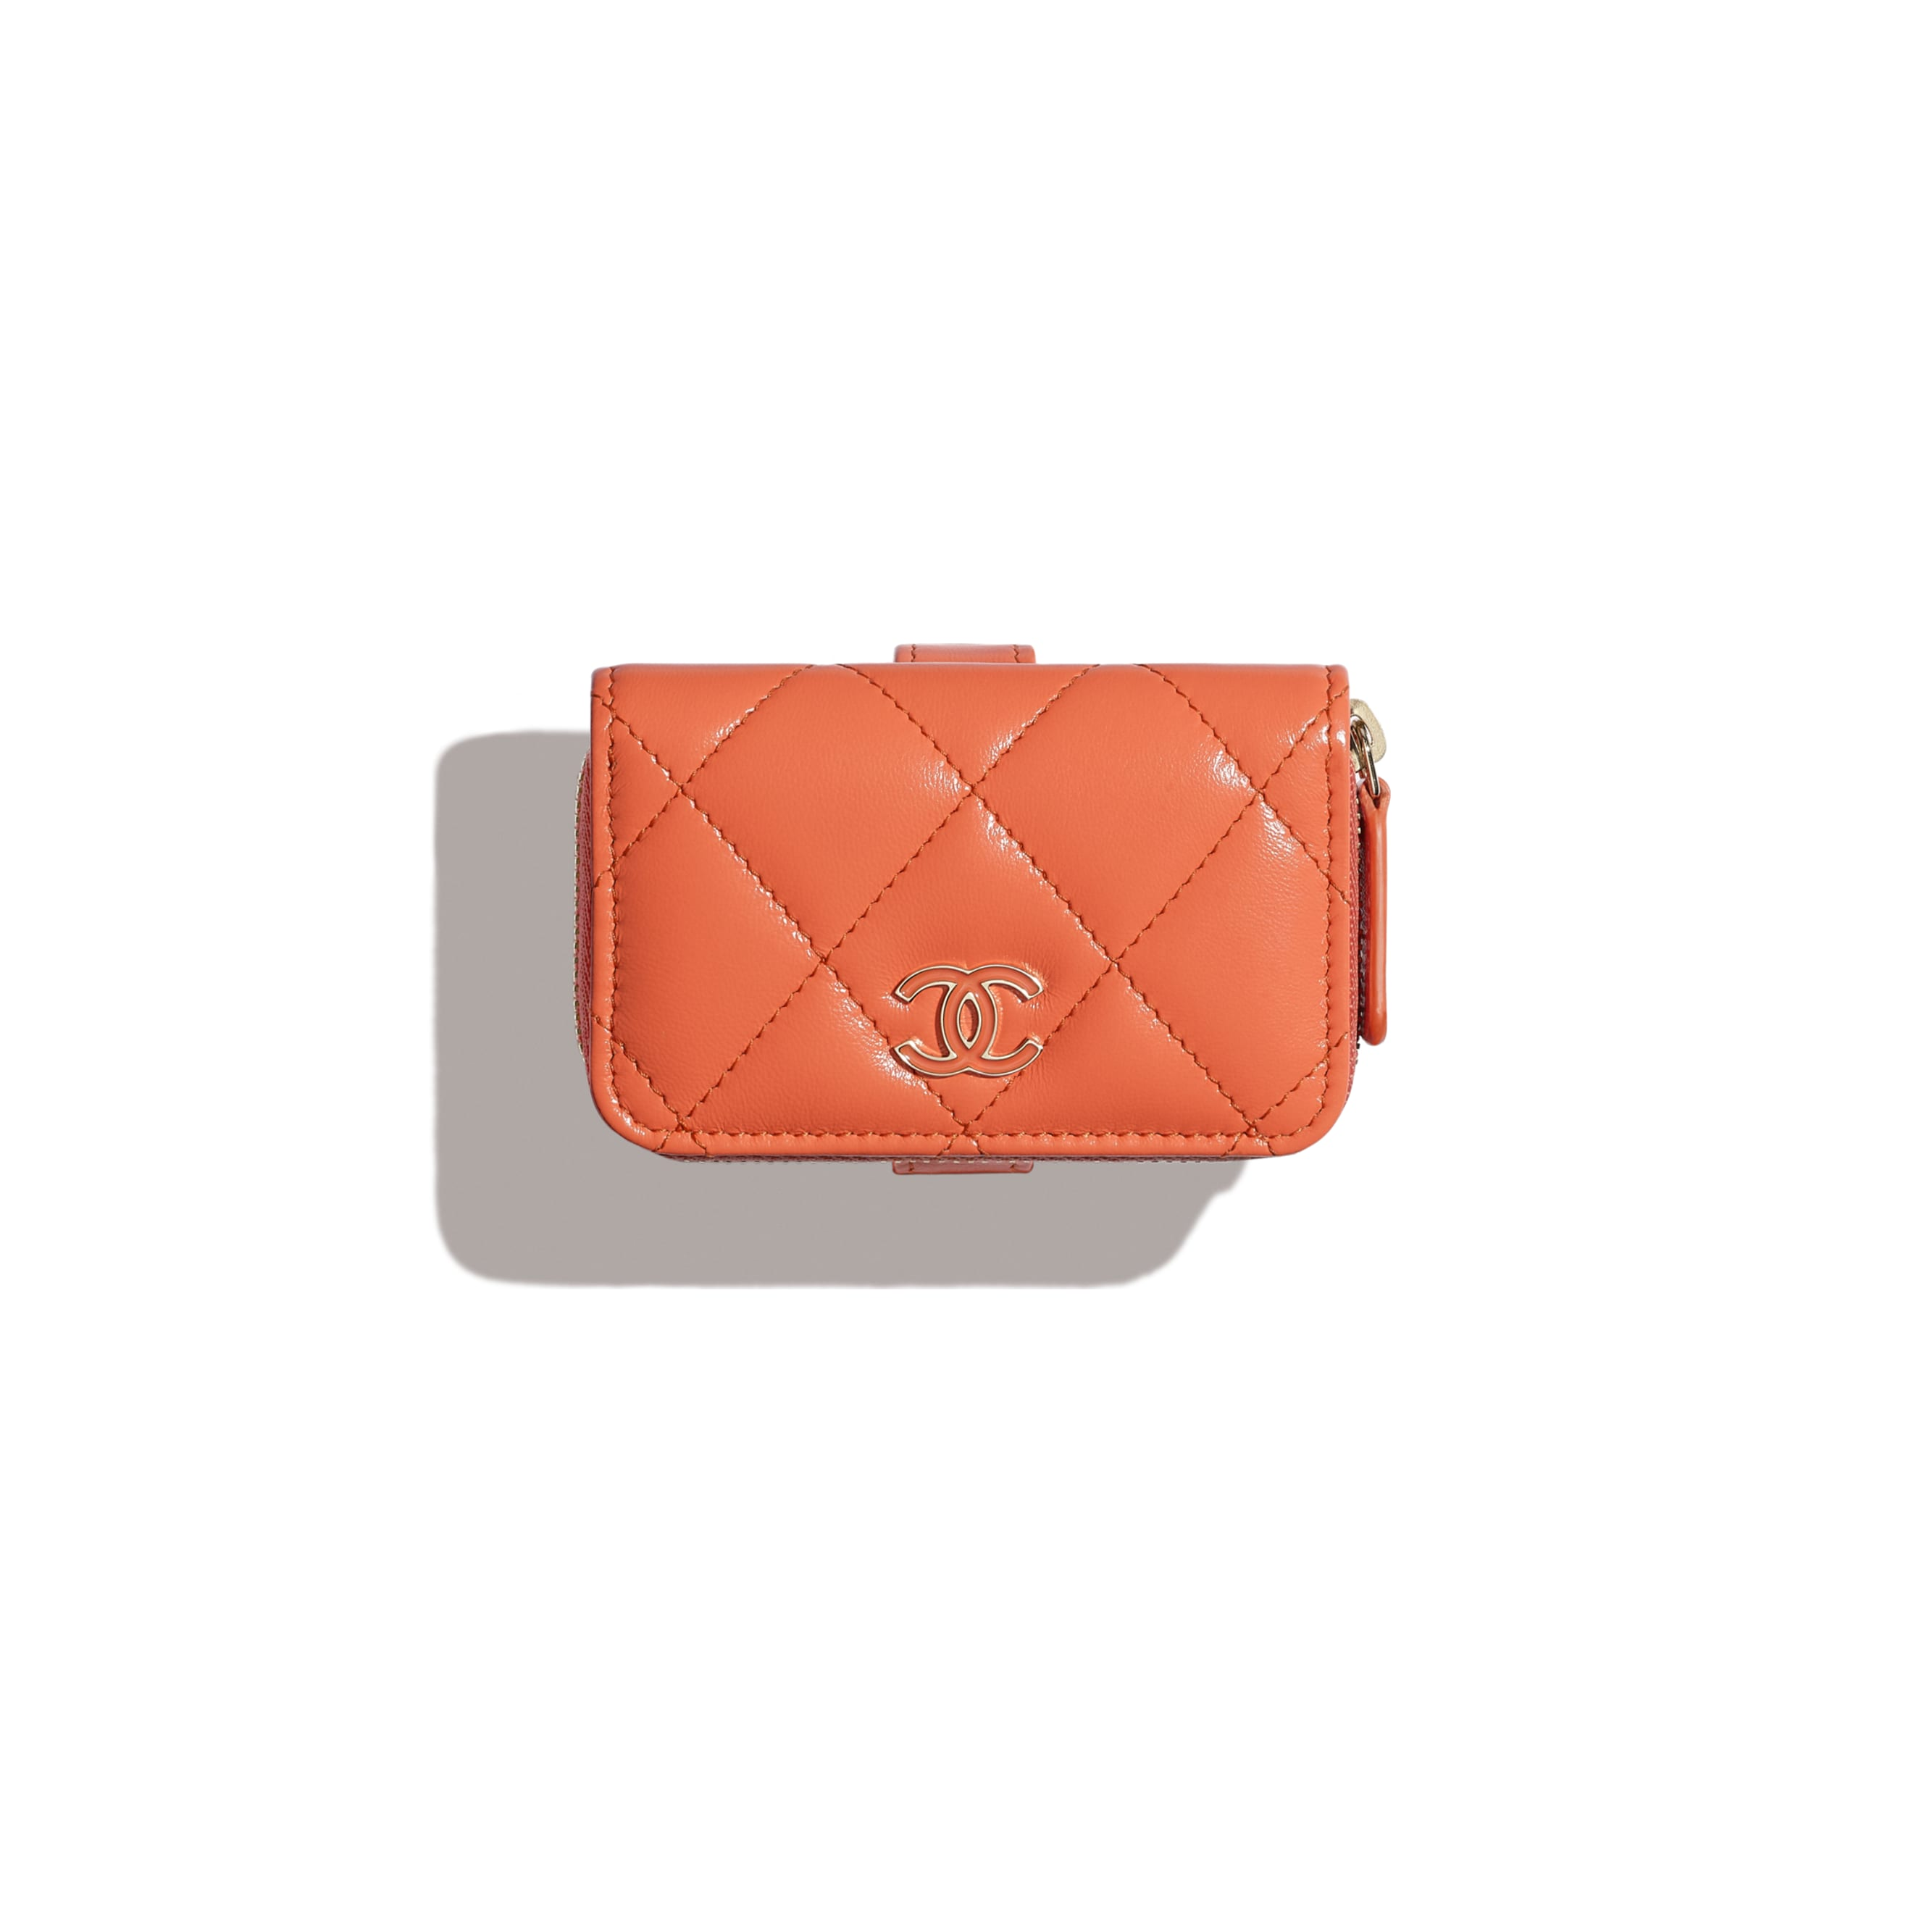 Zipped Coin Purse Wristlet - Orange - Shiny Crumpled Lambskin, Lacquered & Gold-Tone Metal - Default view - see standard sized version